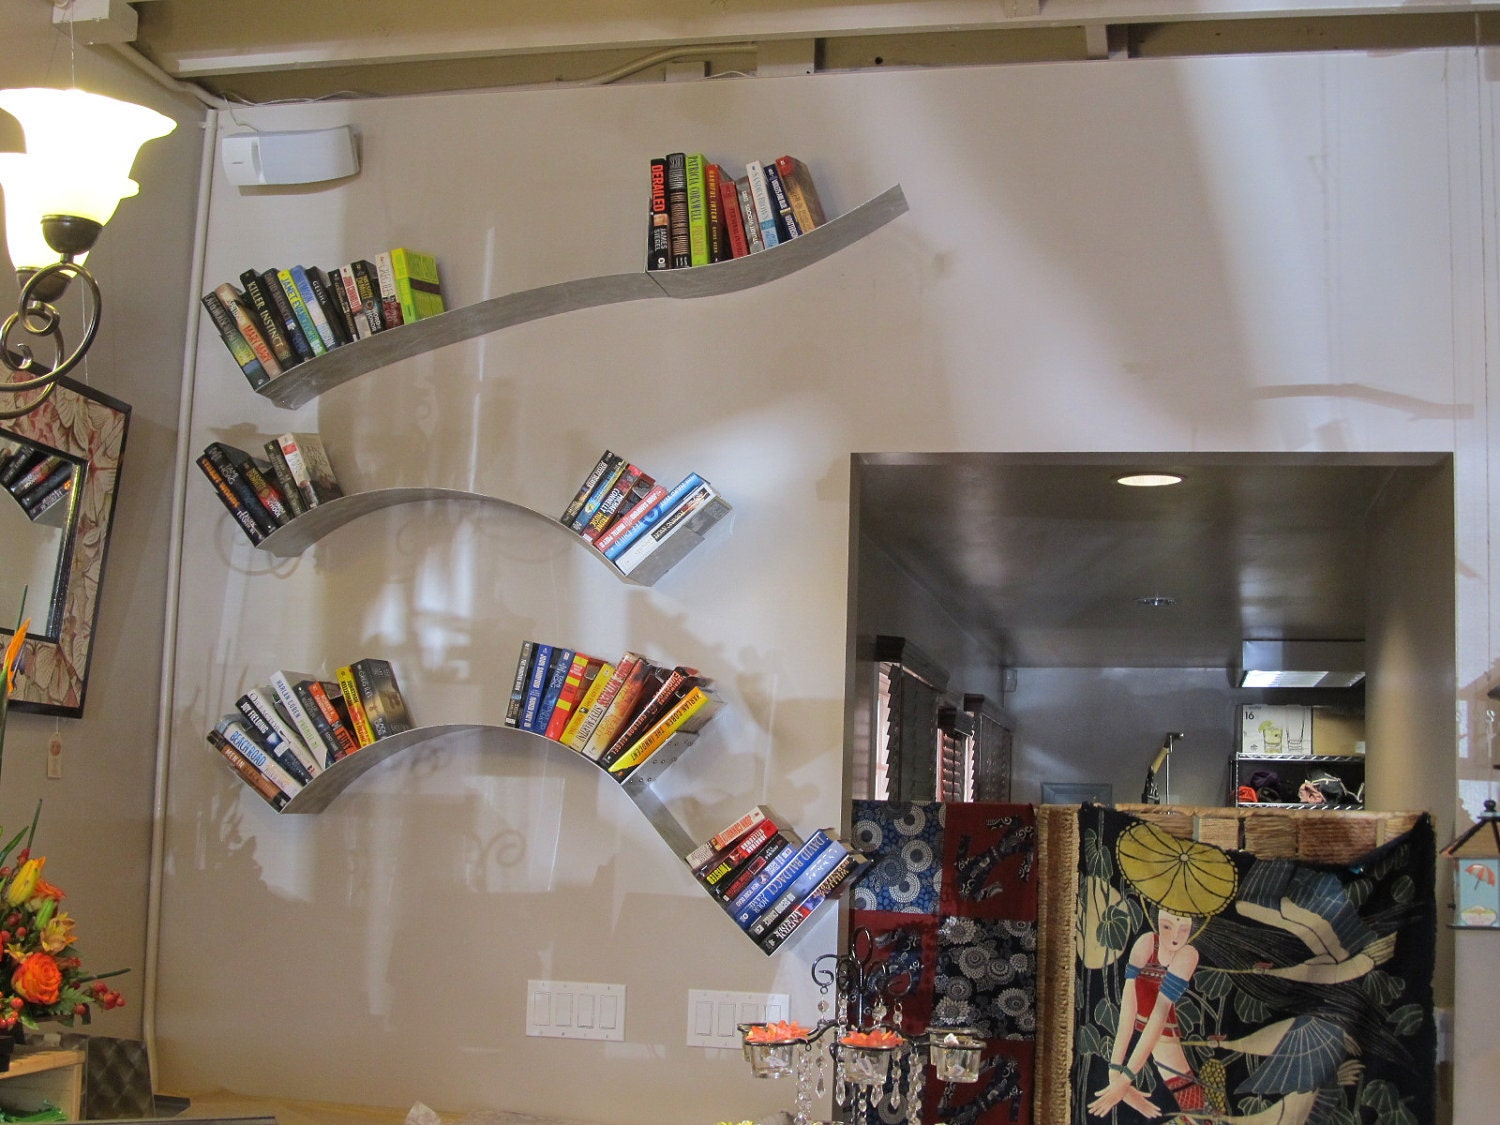 Hanging wave wall bookshelf by kufadesigns on etsy for Hanging bookshelves